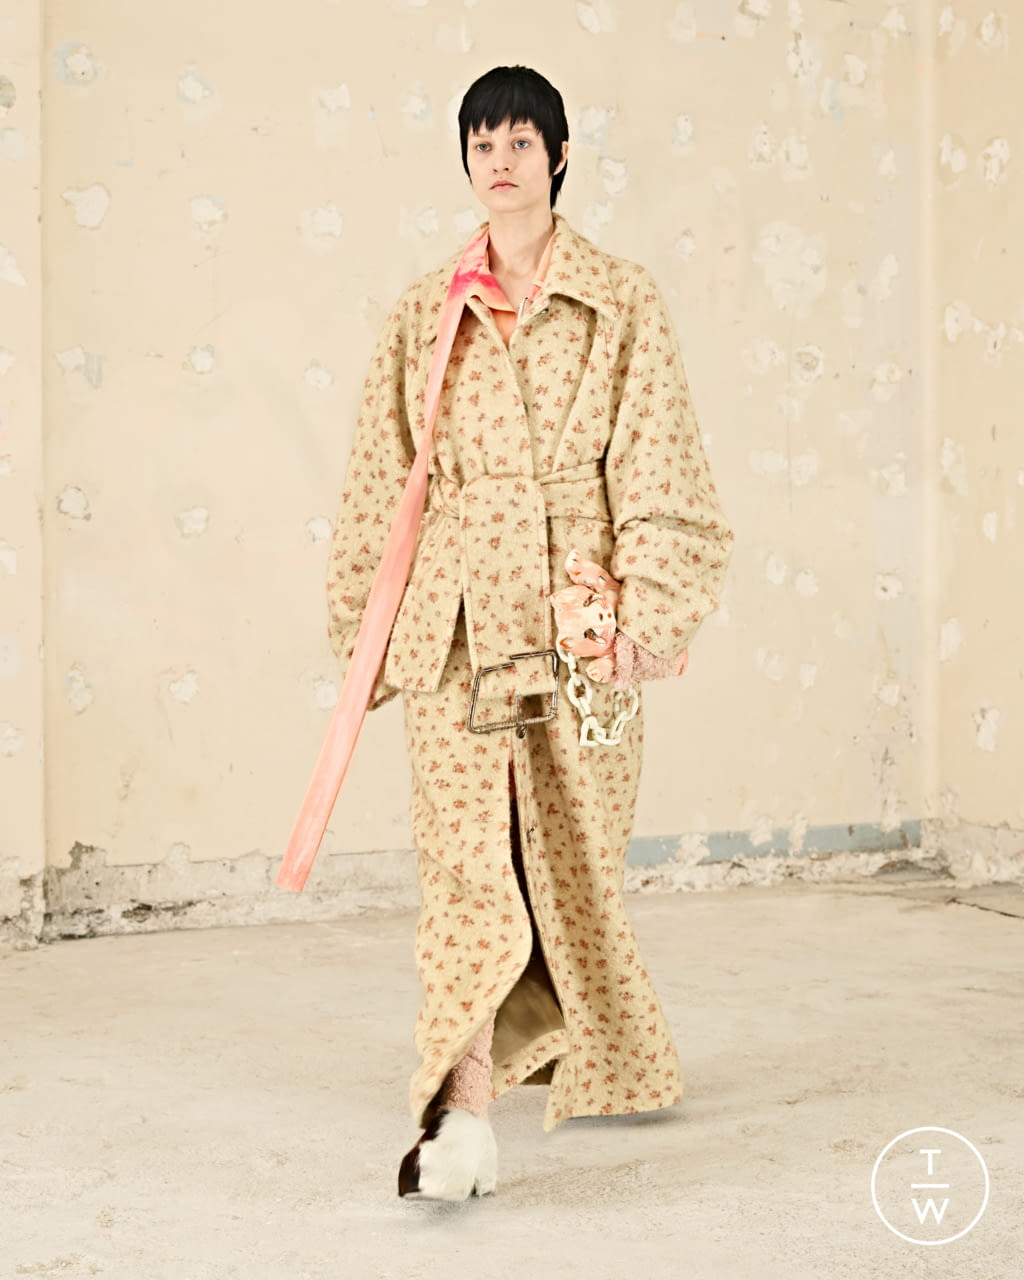 look 1 as fw21 womens runway press site 4265 2d9a74 - Paris Fashion Week and an Invitation to Release Dopamine